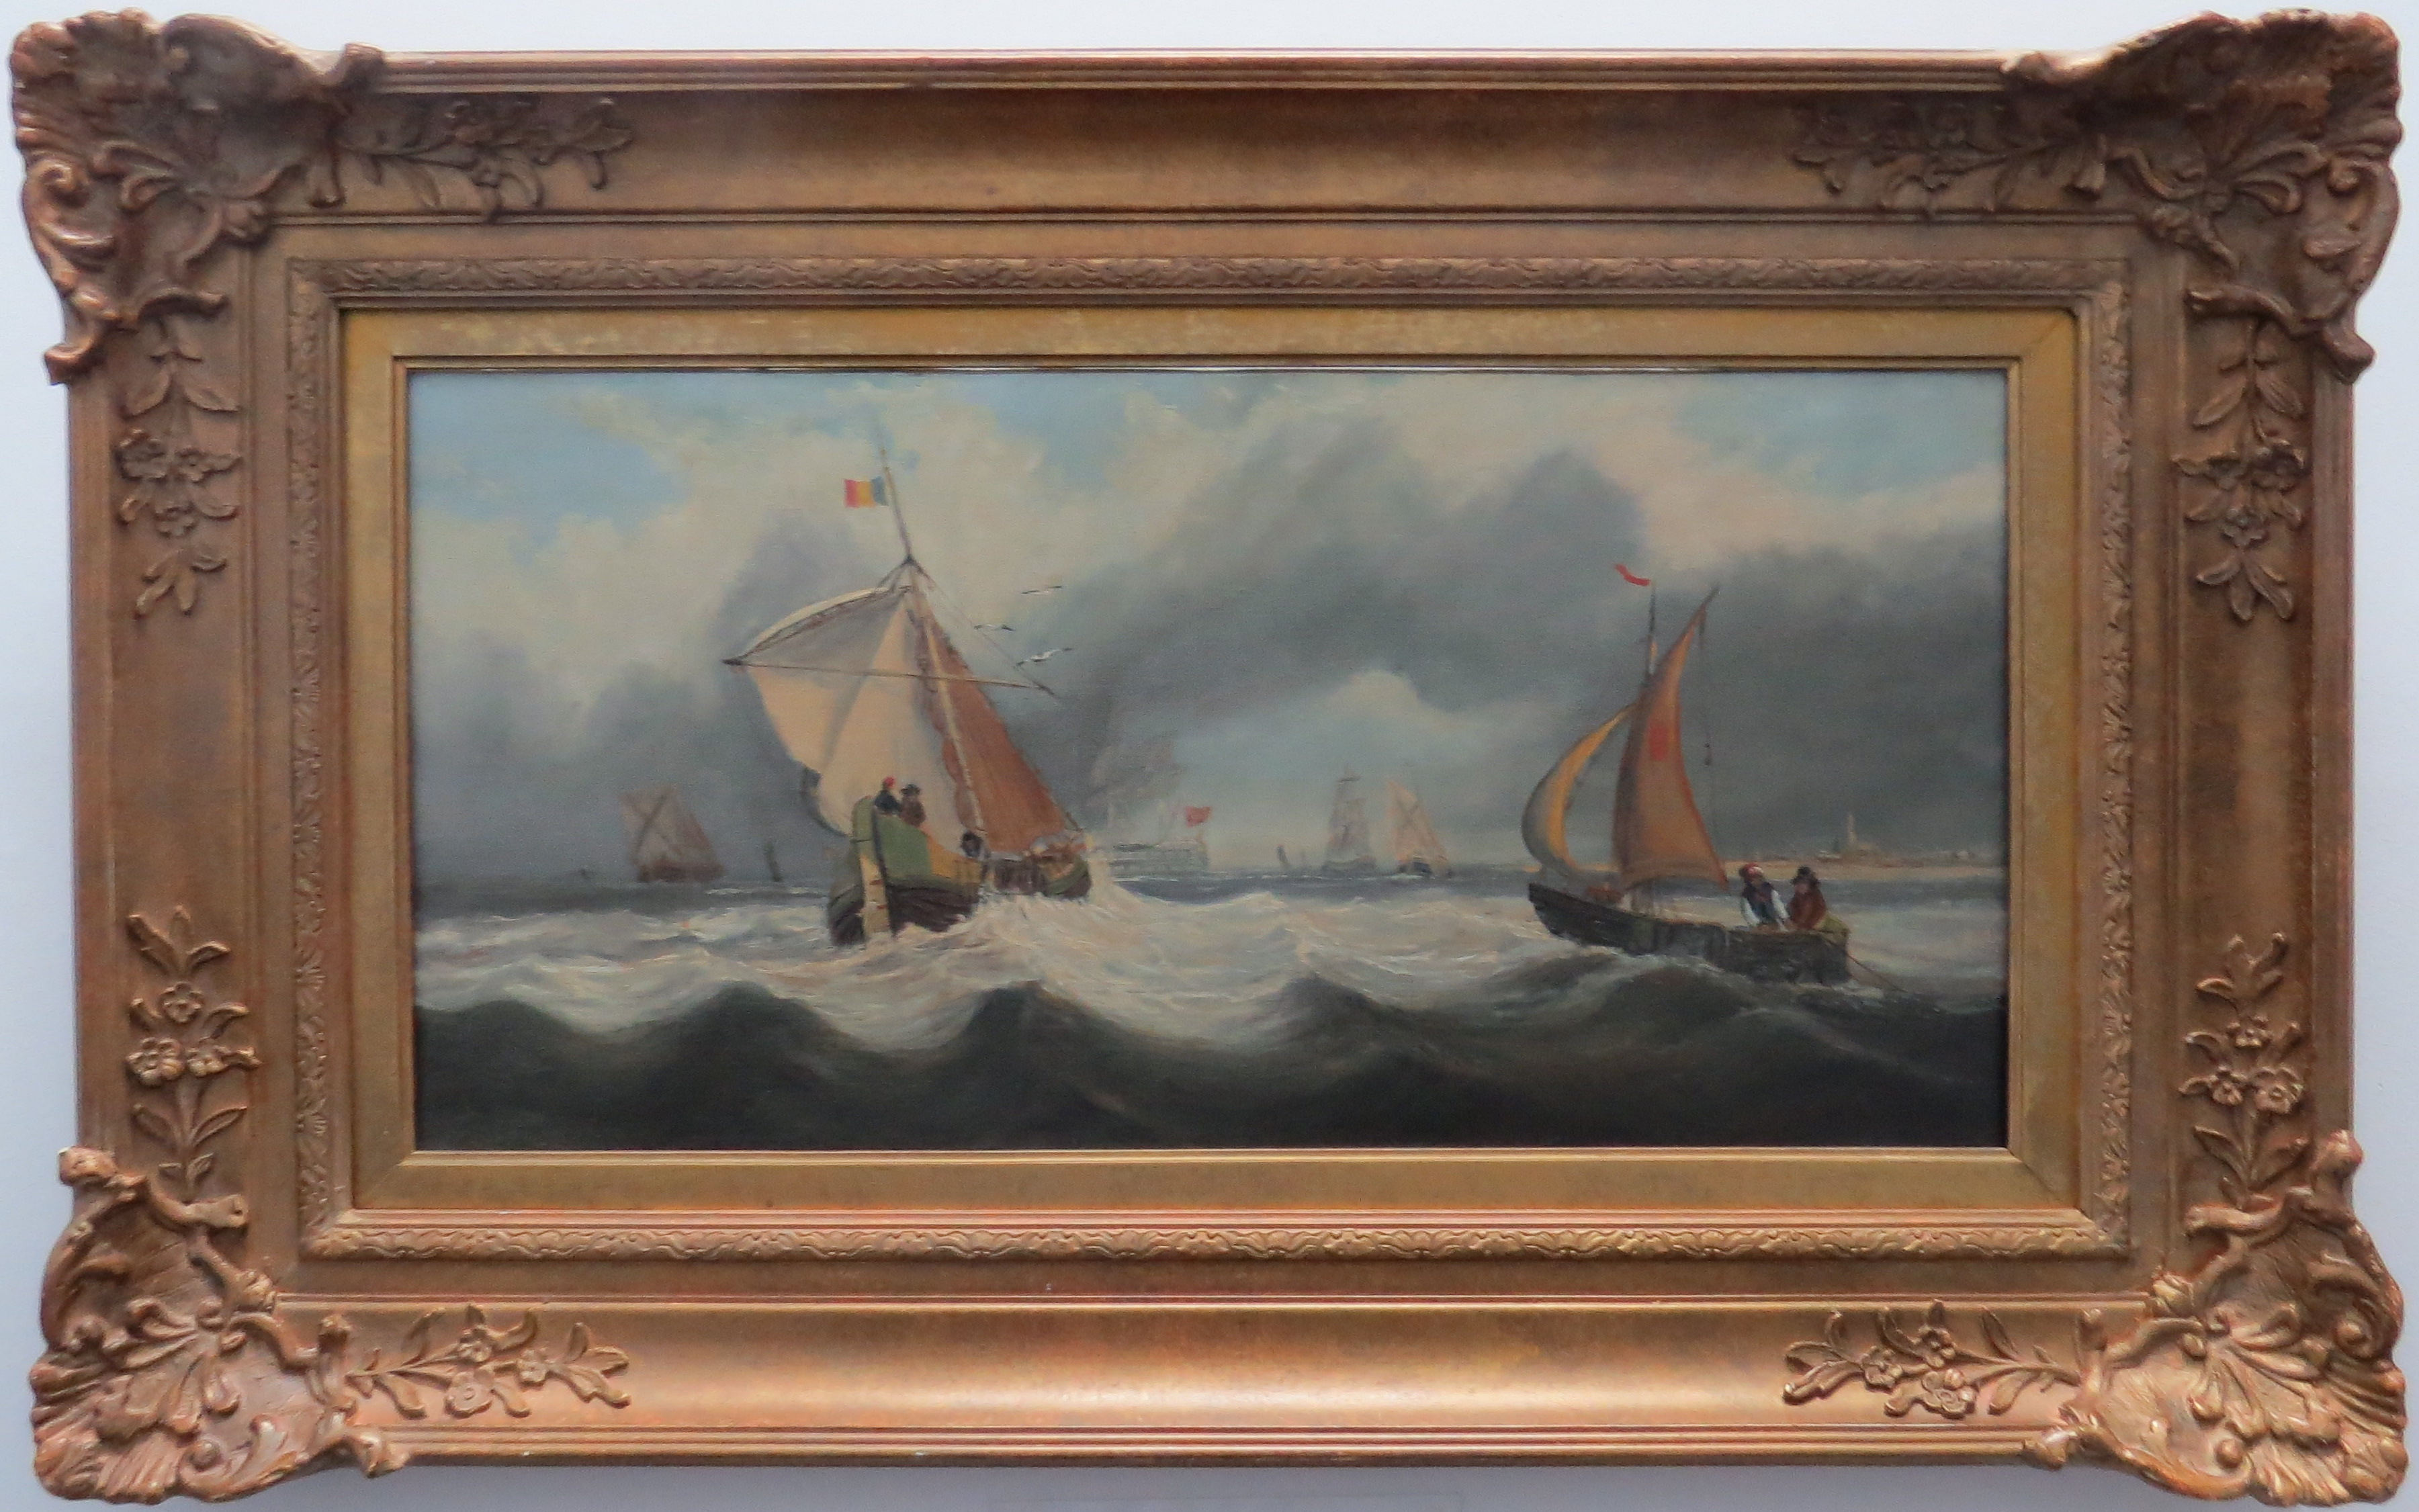 Oil on Canvas of Sailing Vessels, English School of Art